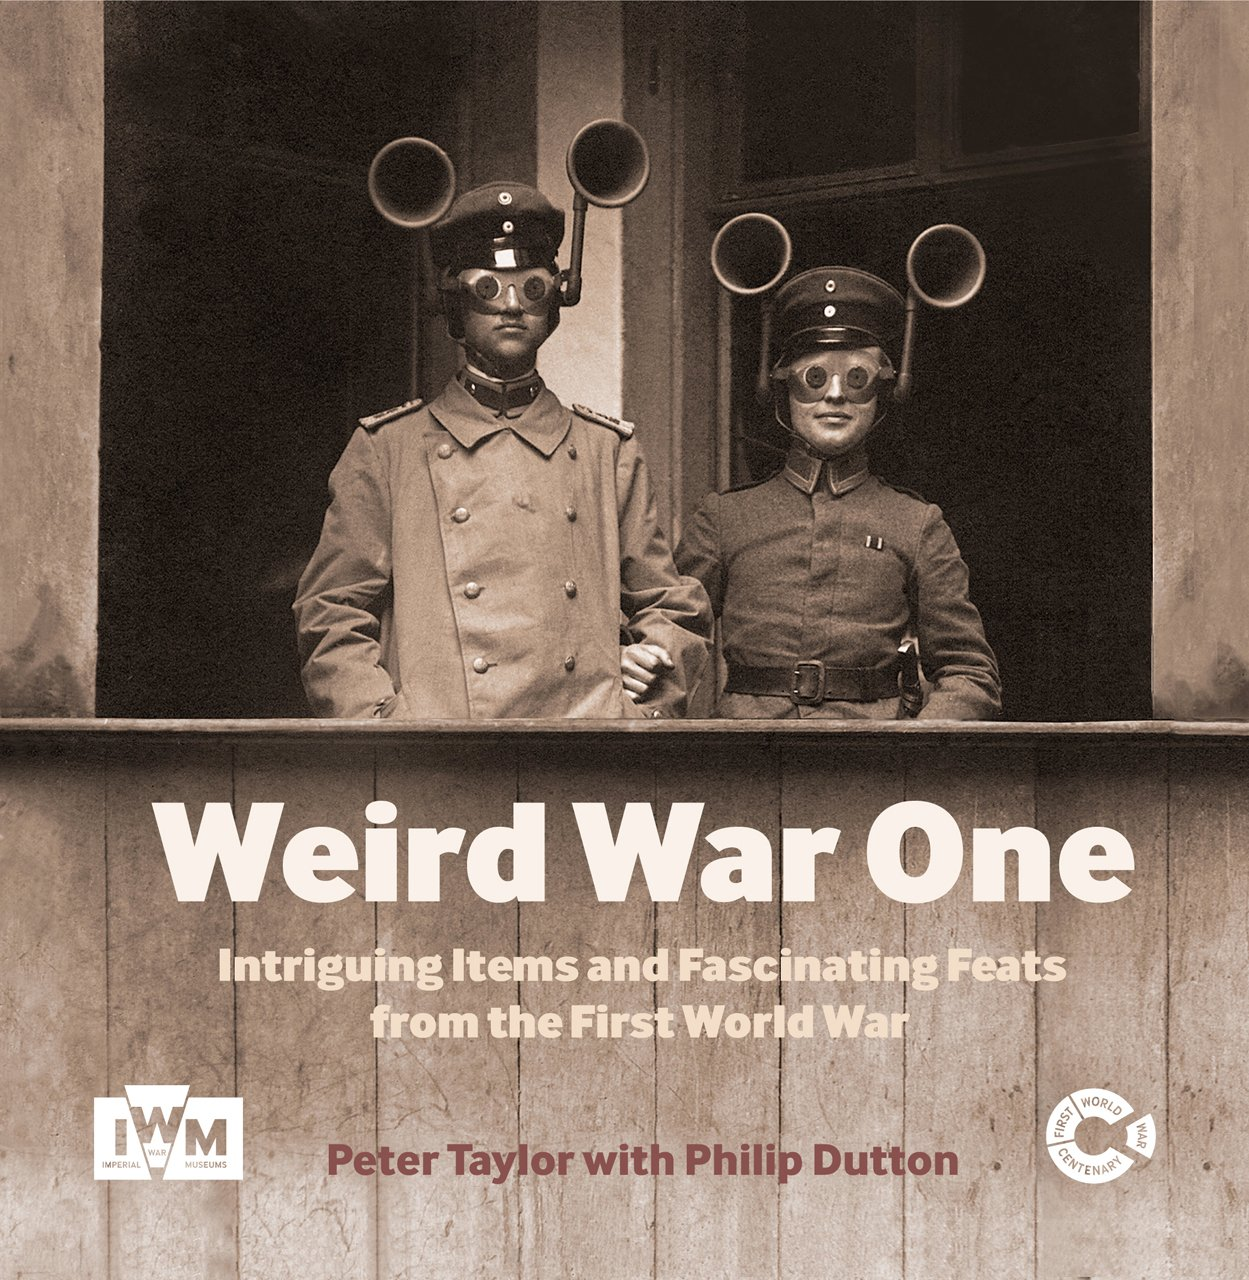 Weird War One: Intriguing Items and Fascinating Feats from the First World War pdf epub